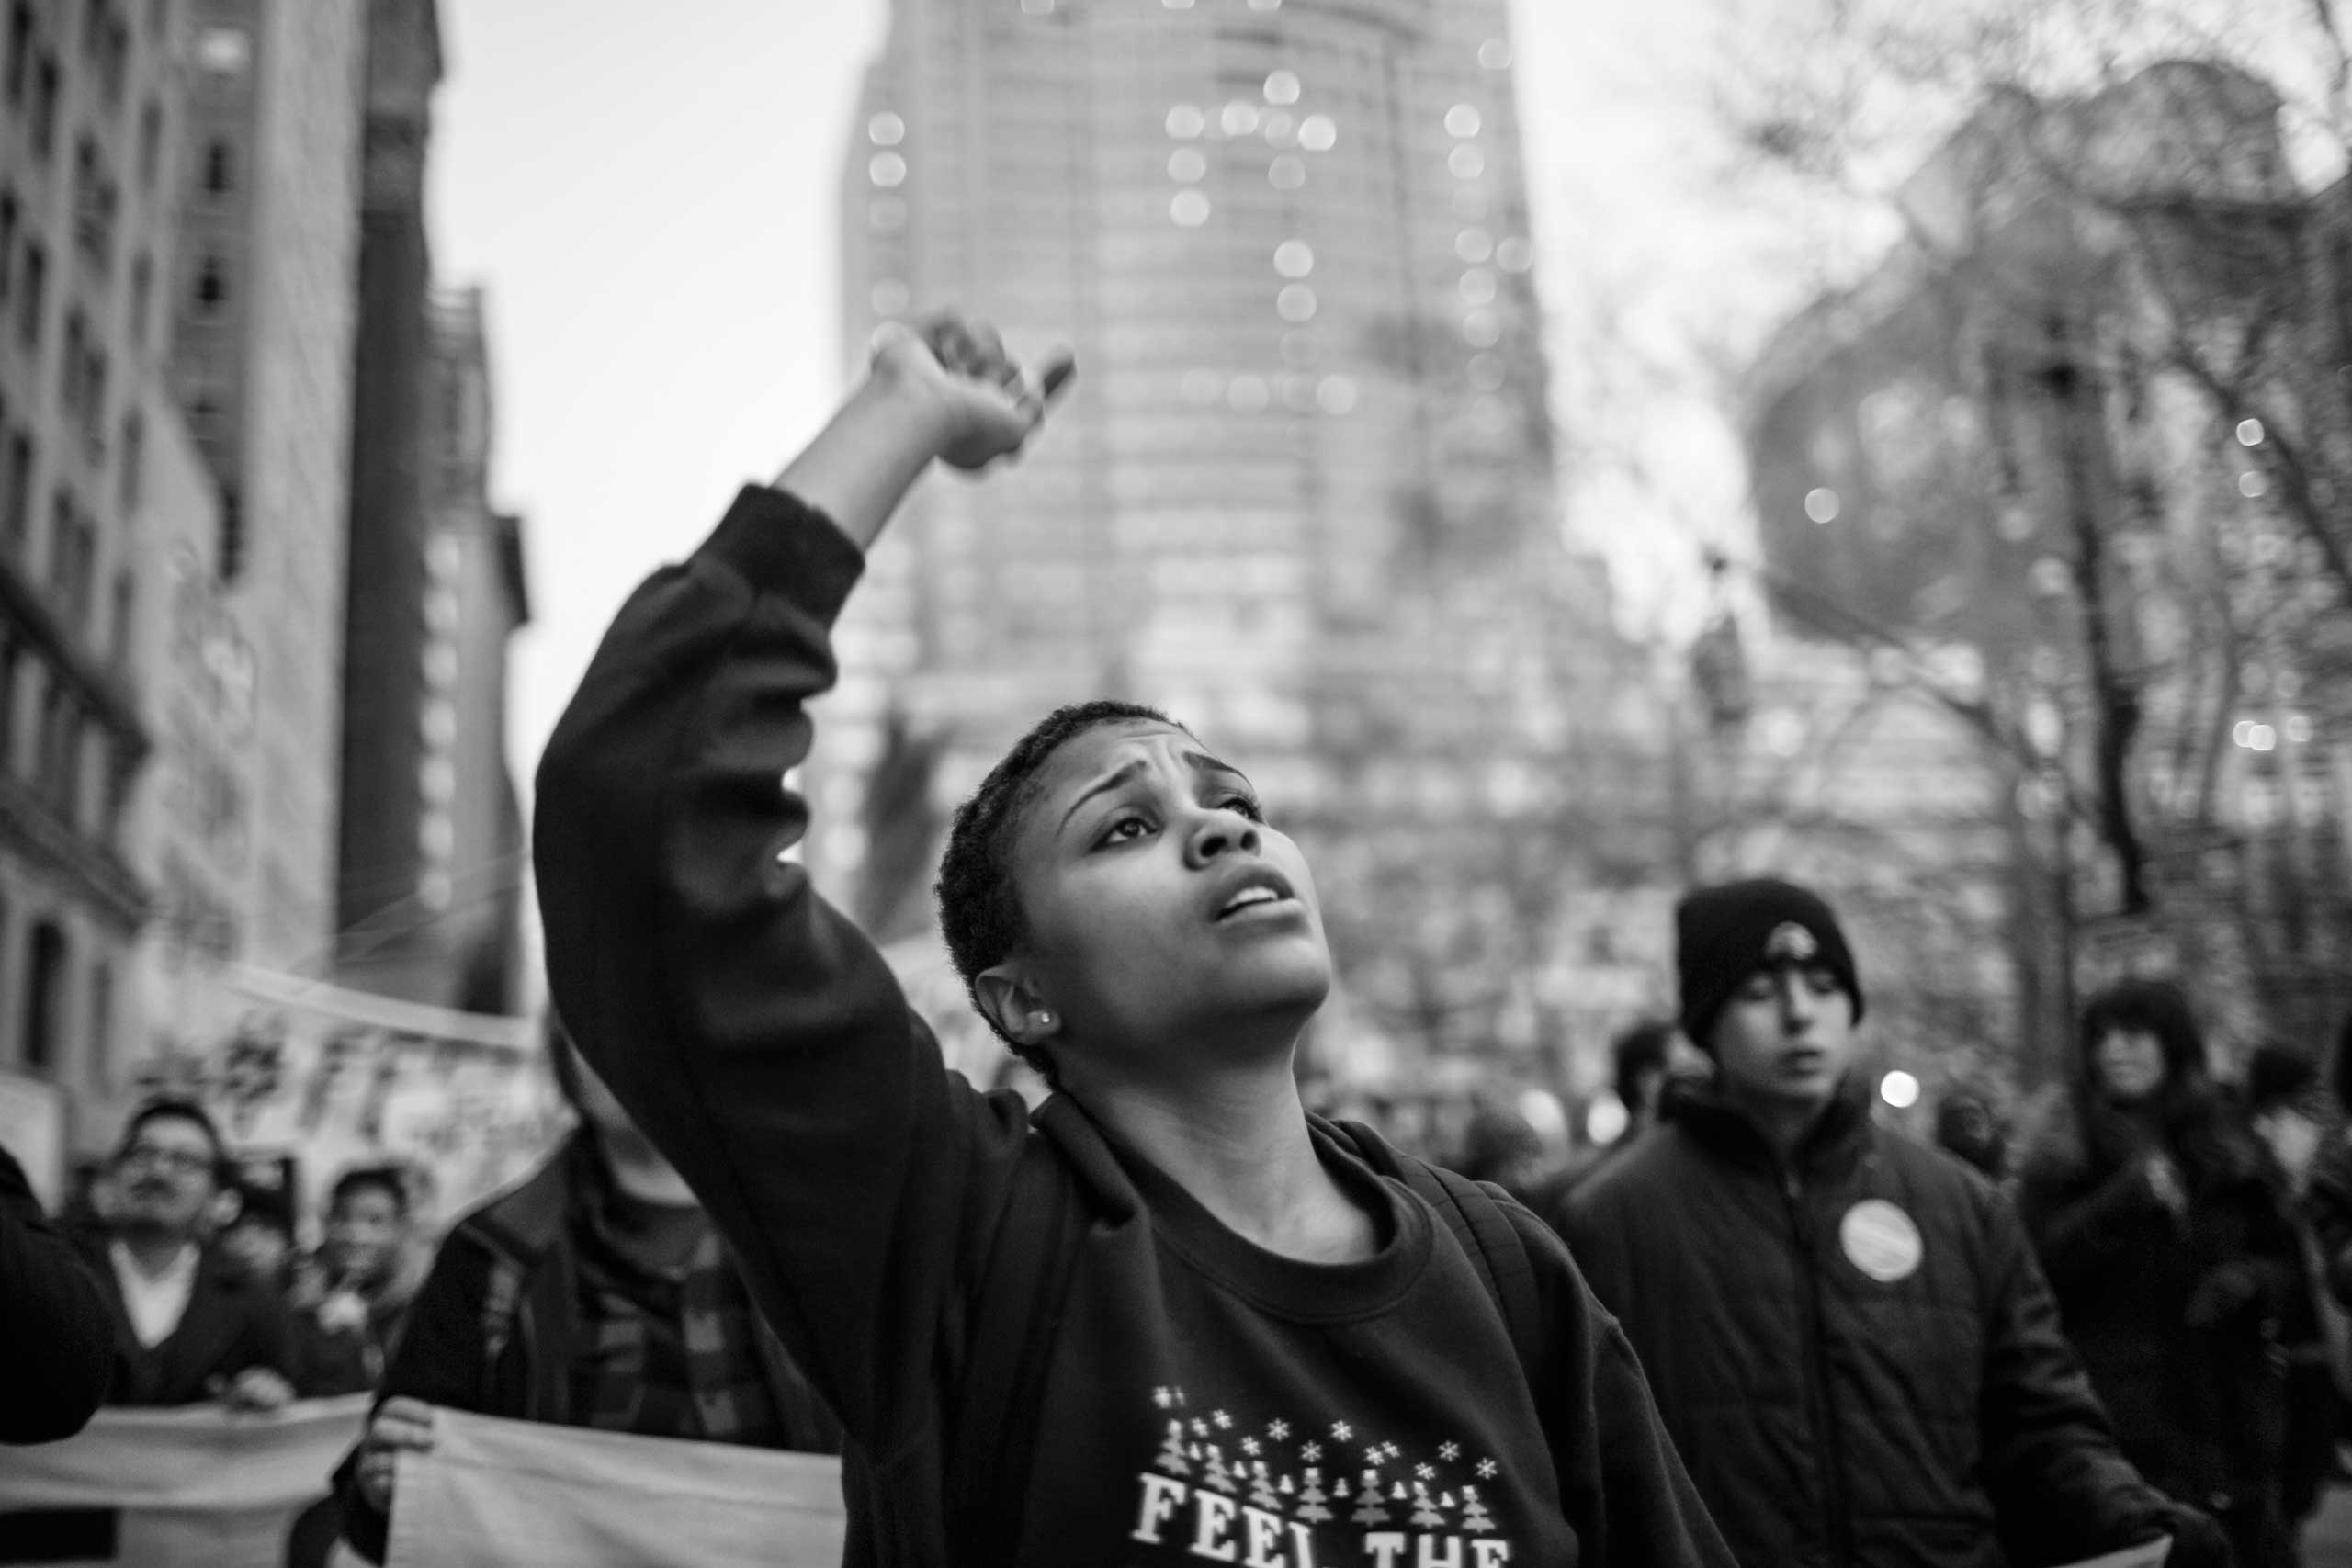 January 30, 2016 - New York, New York: A supporter is rallying for Democratic Party presidential candidate Bernie Sanders on a march from Union Square to Zuccotti Park.